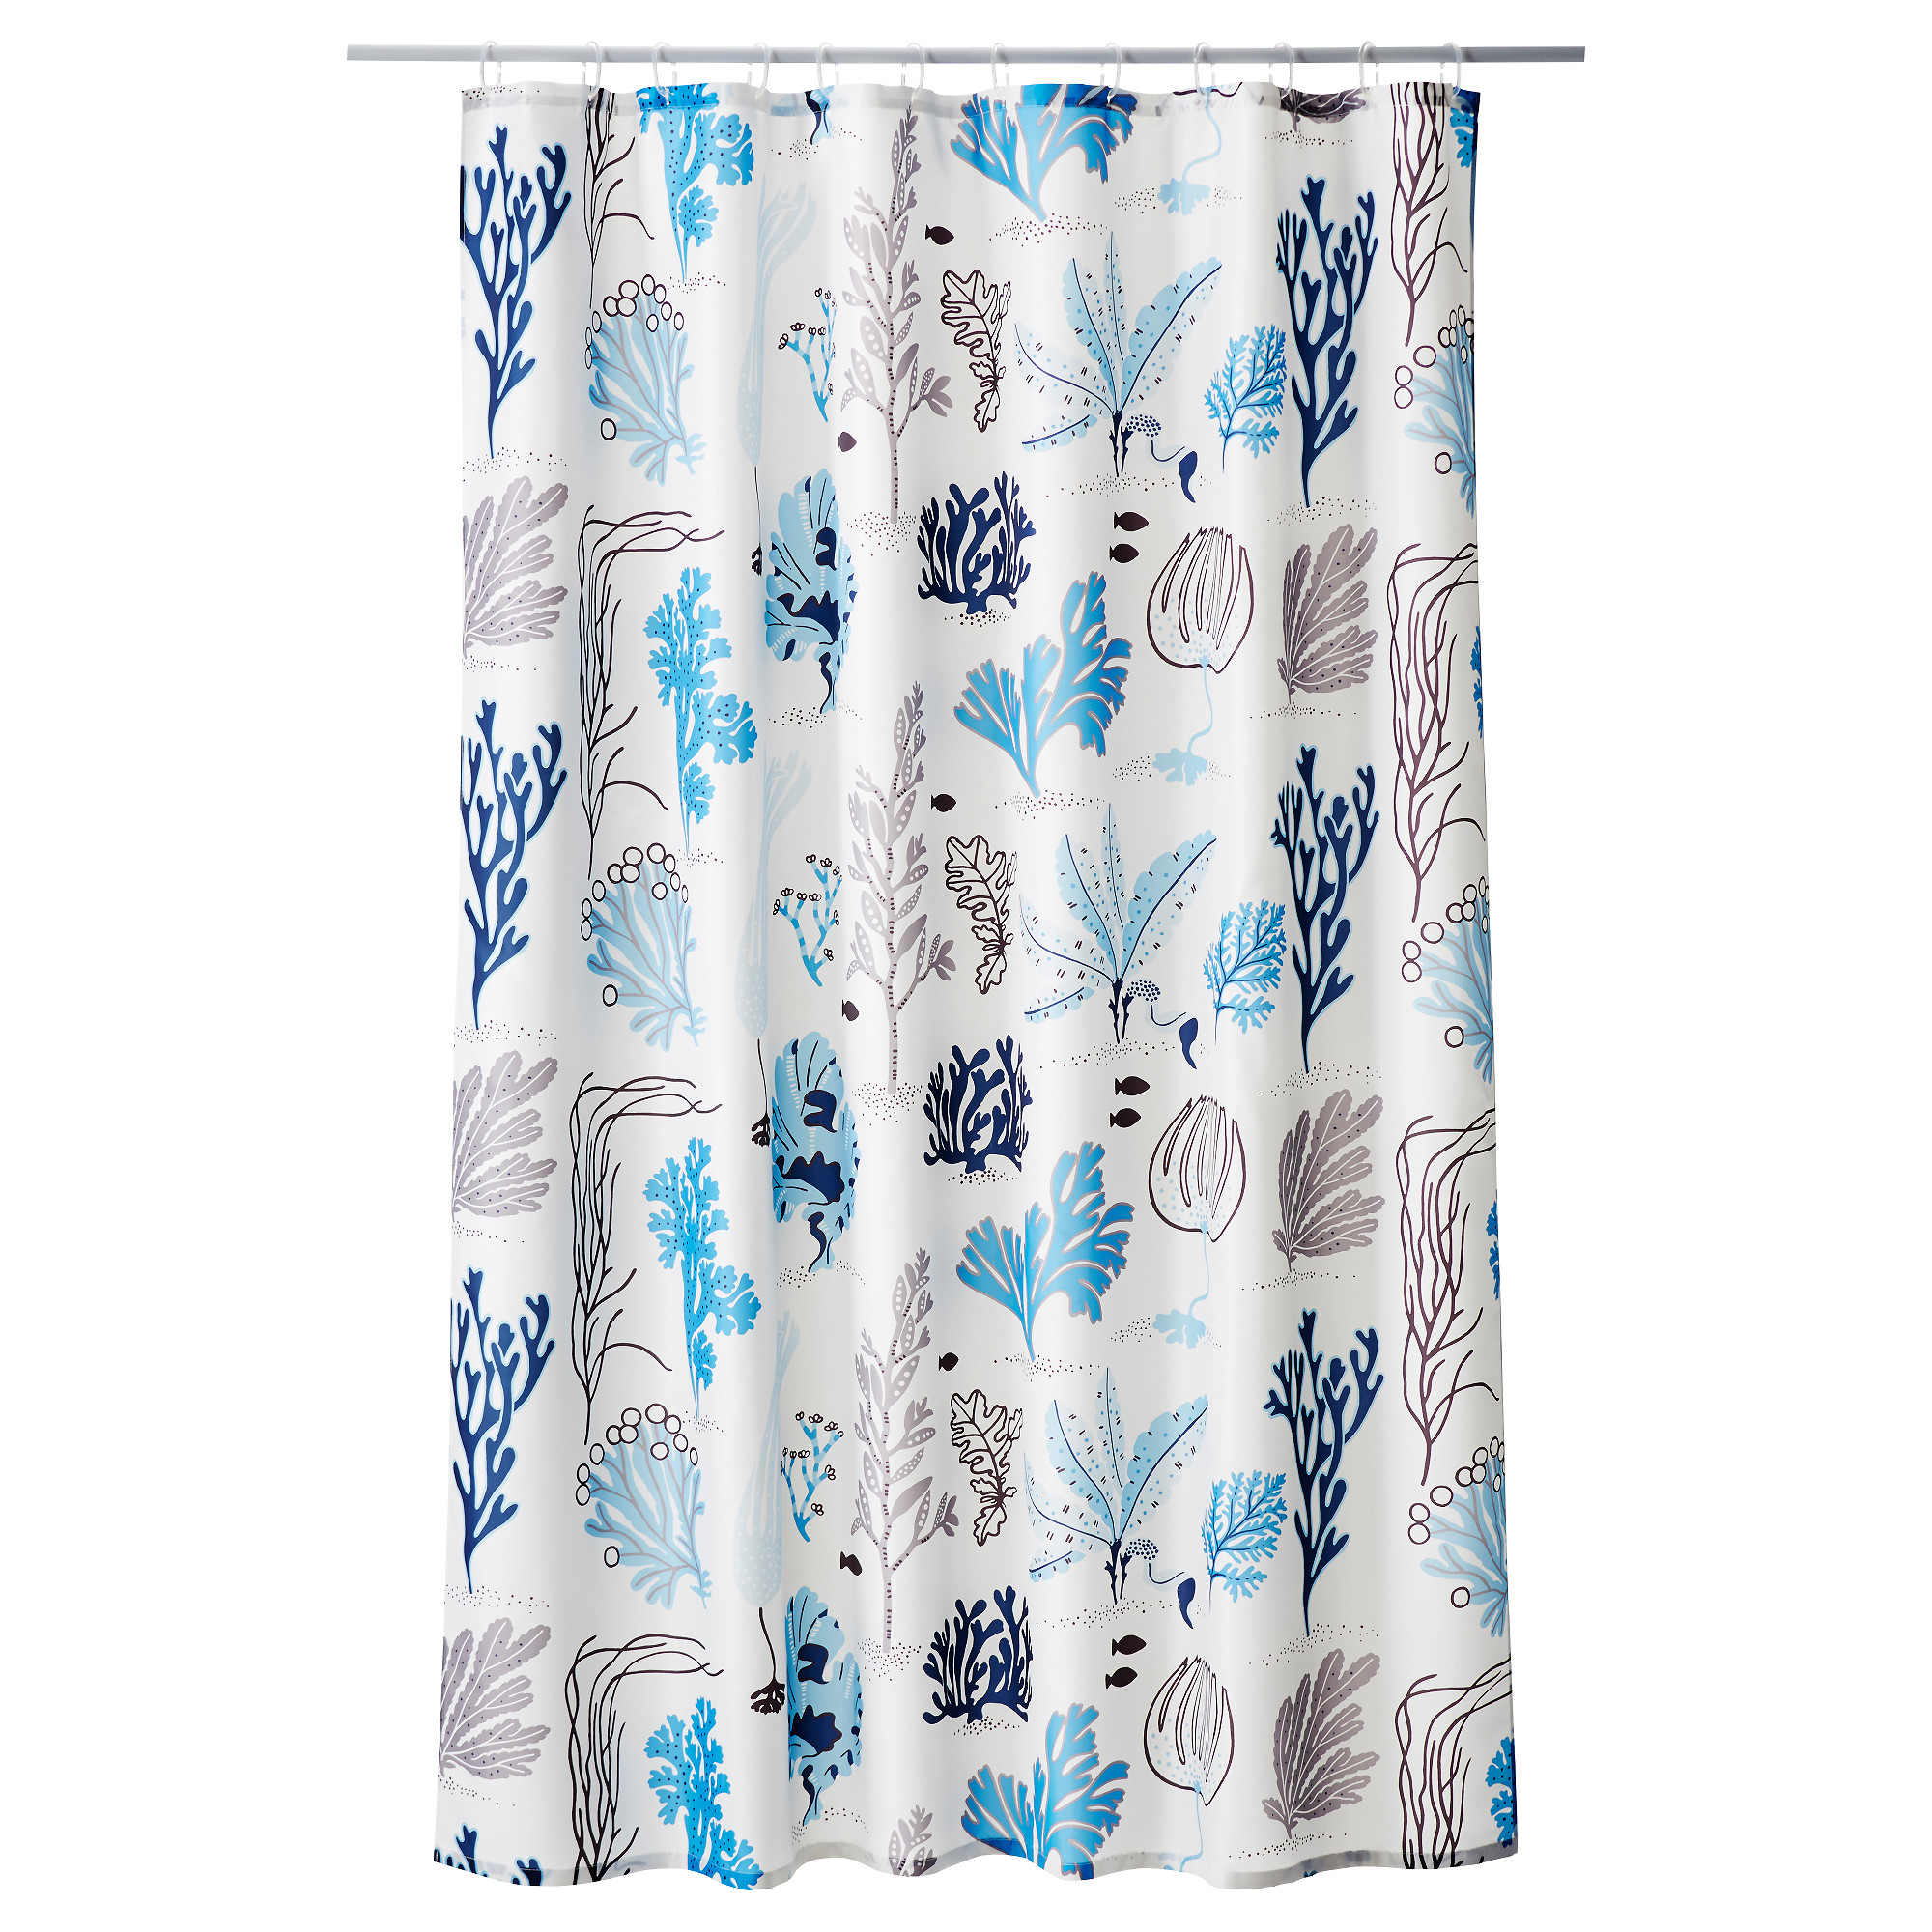 Shower Curtains Ikea | Standard Shower Curtain Length | Ikea Shower Curtain